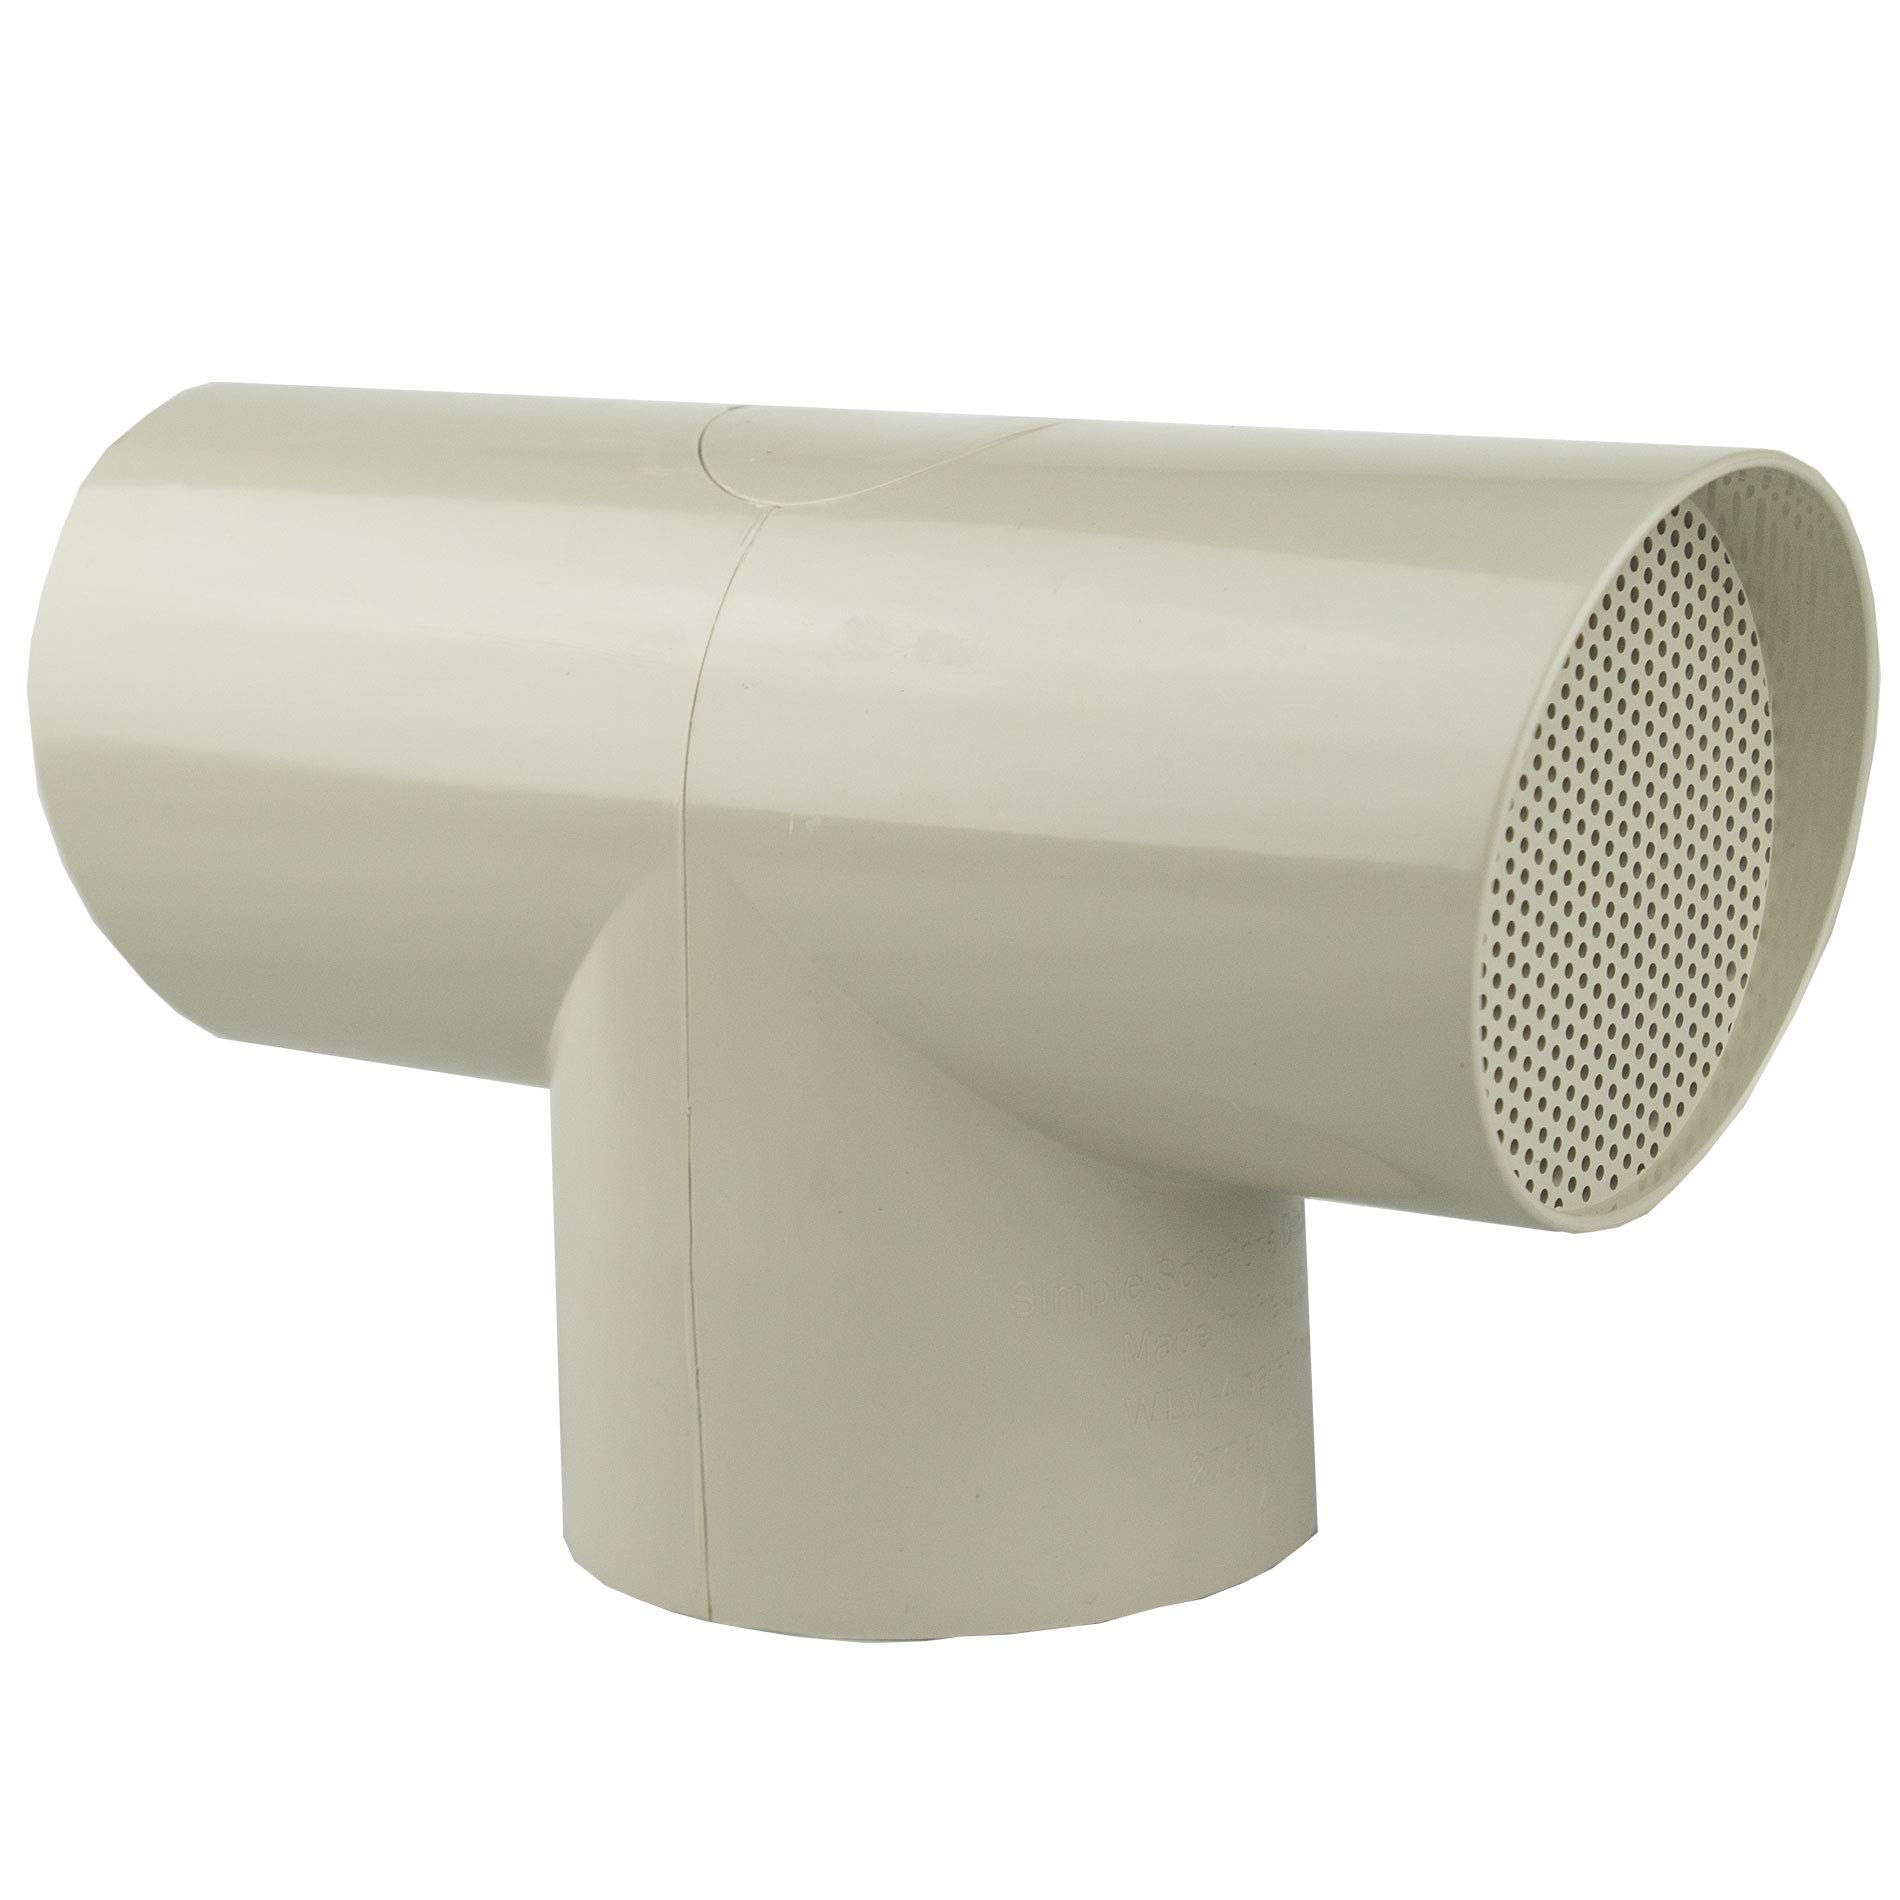 WLV-4 Disposable Residential Vent Odor Filter (4'')